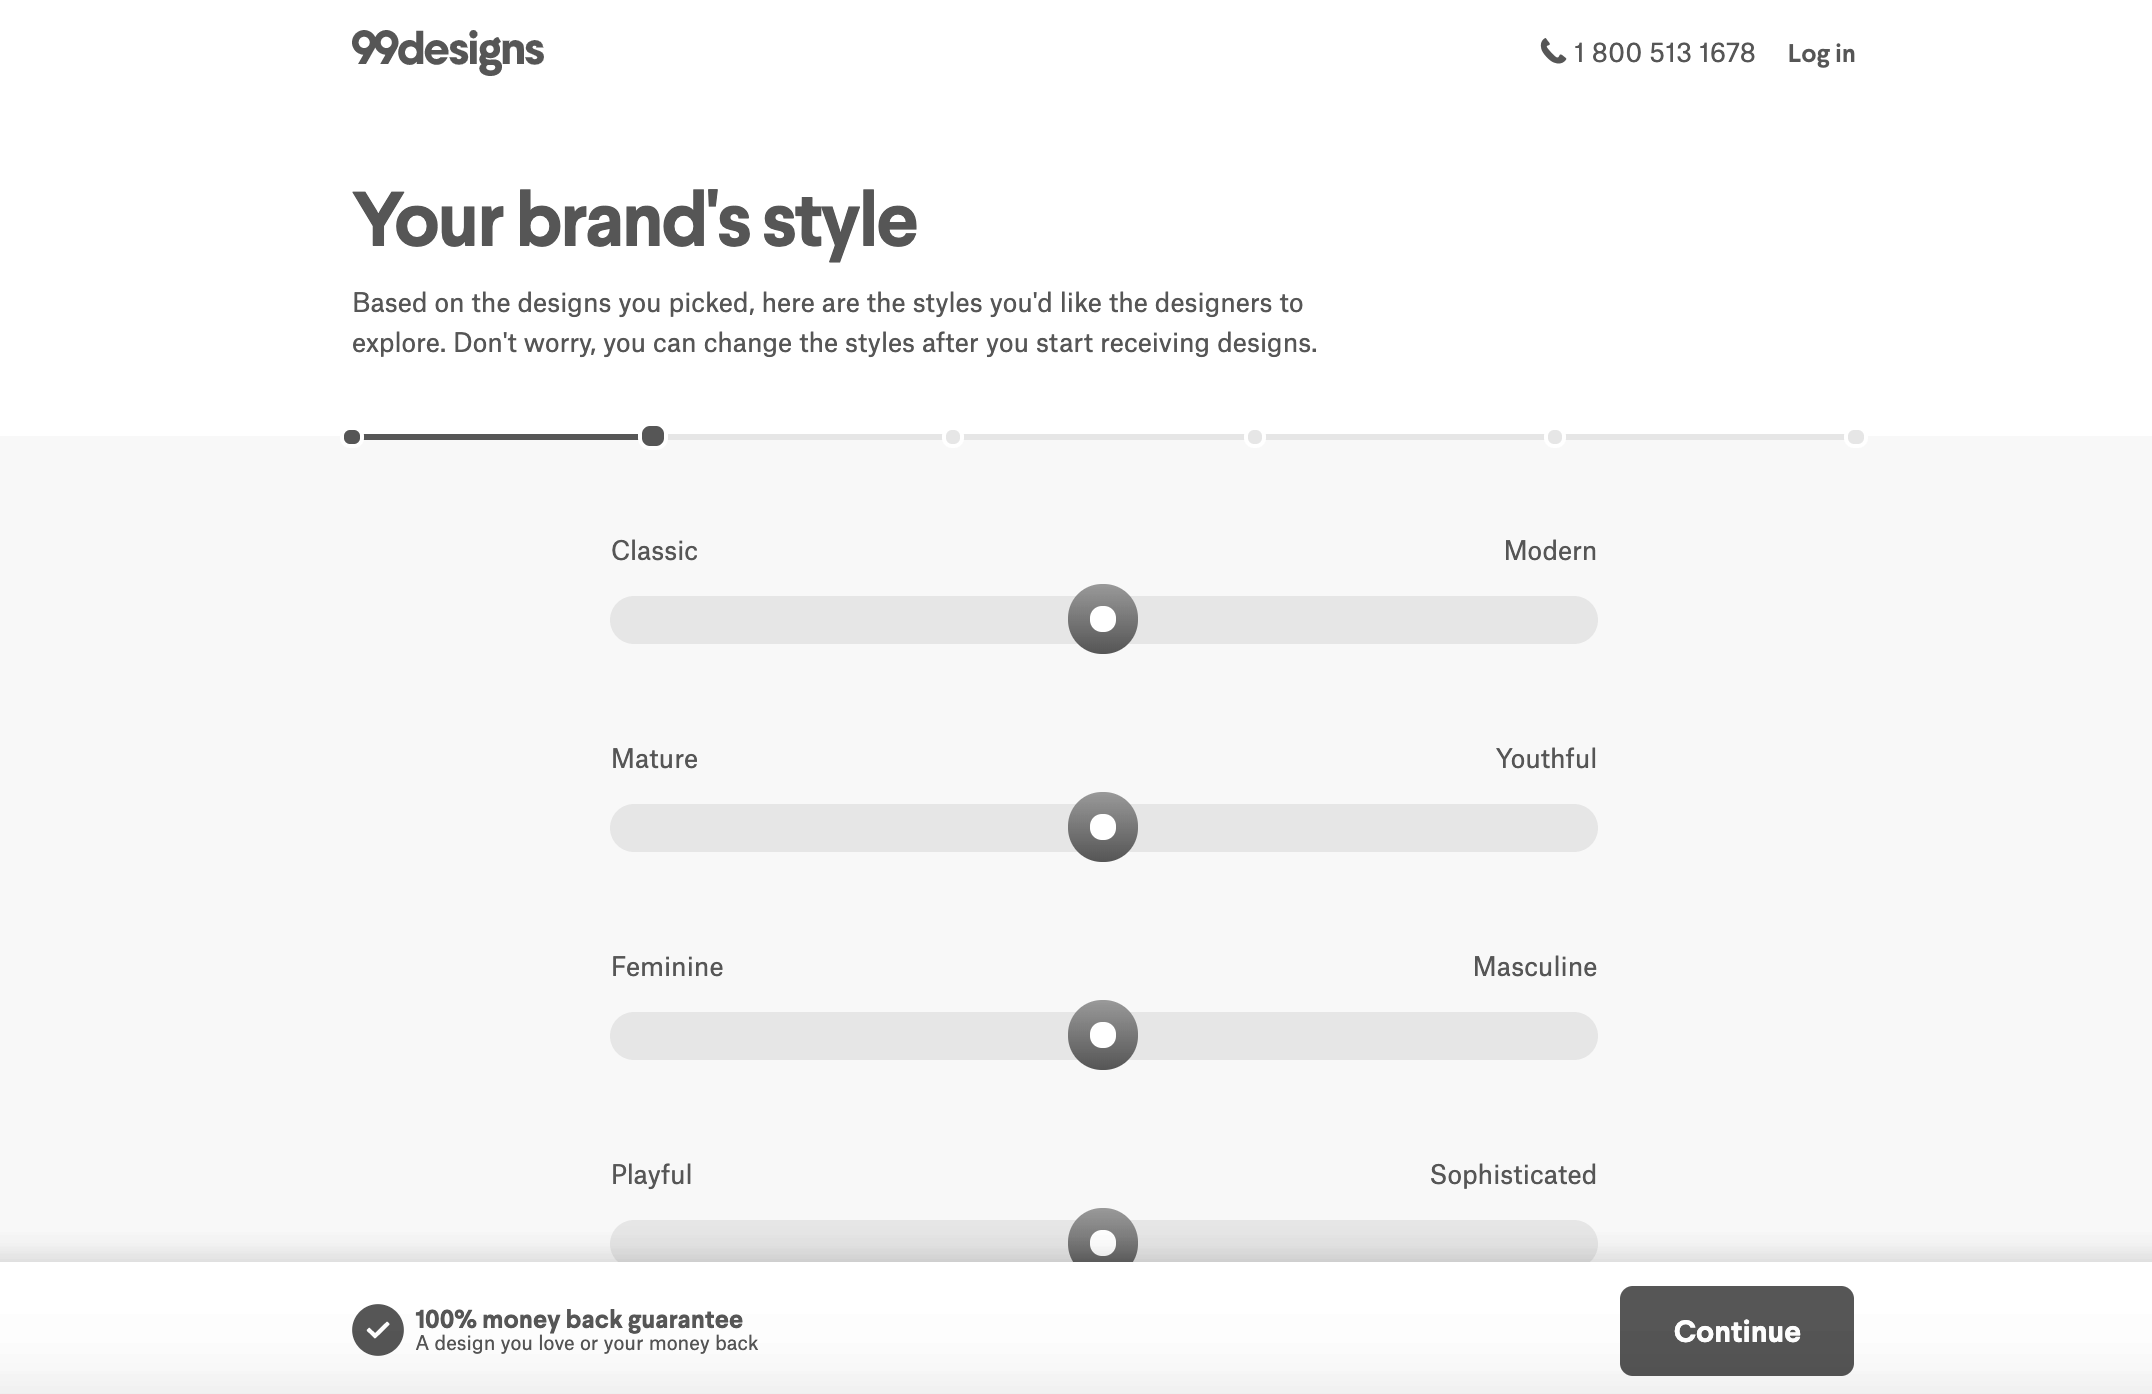 99designs screenshot - Brand styles